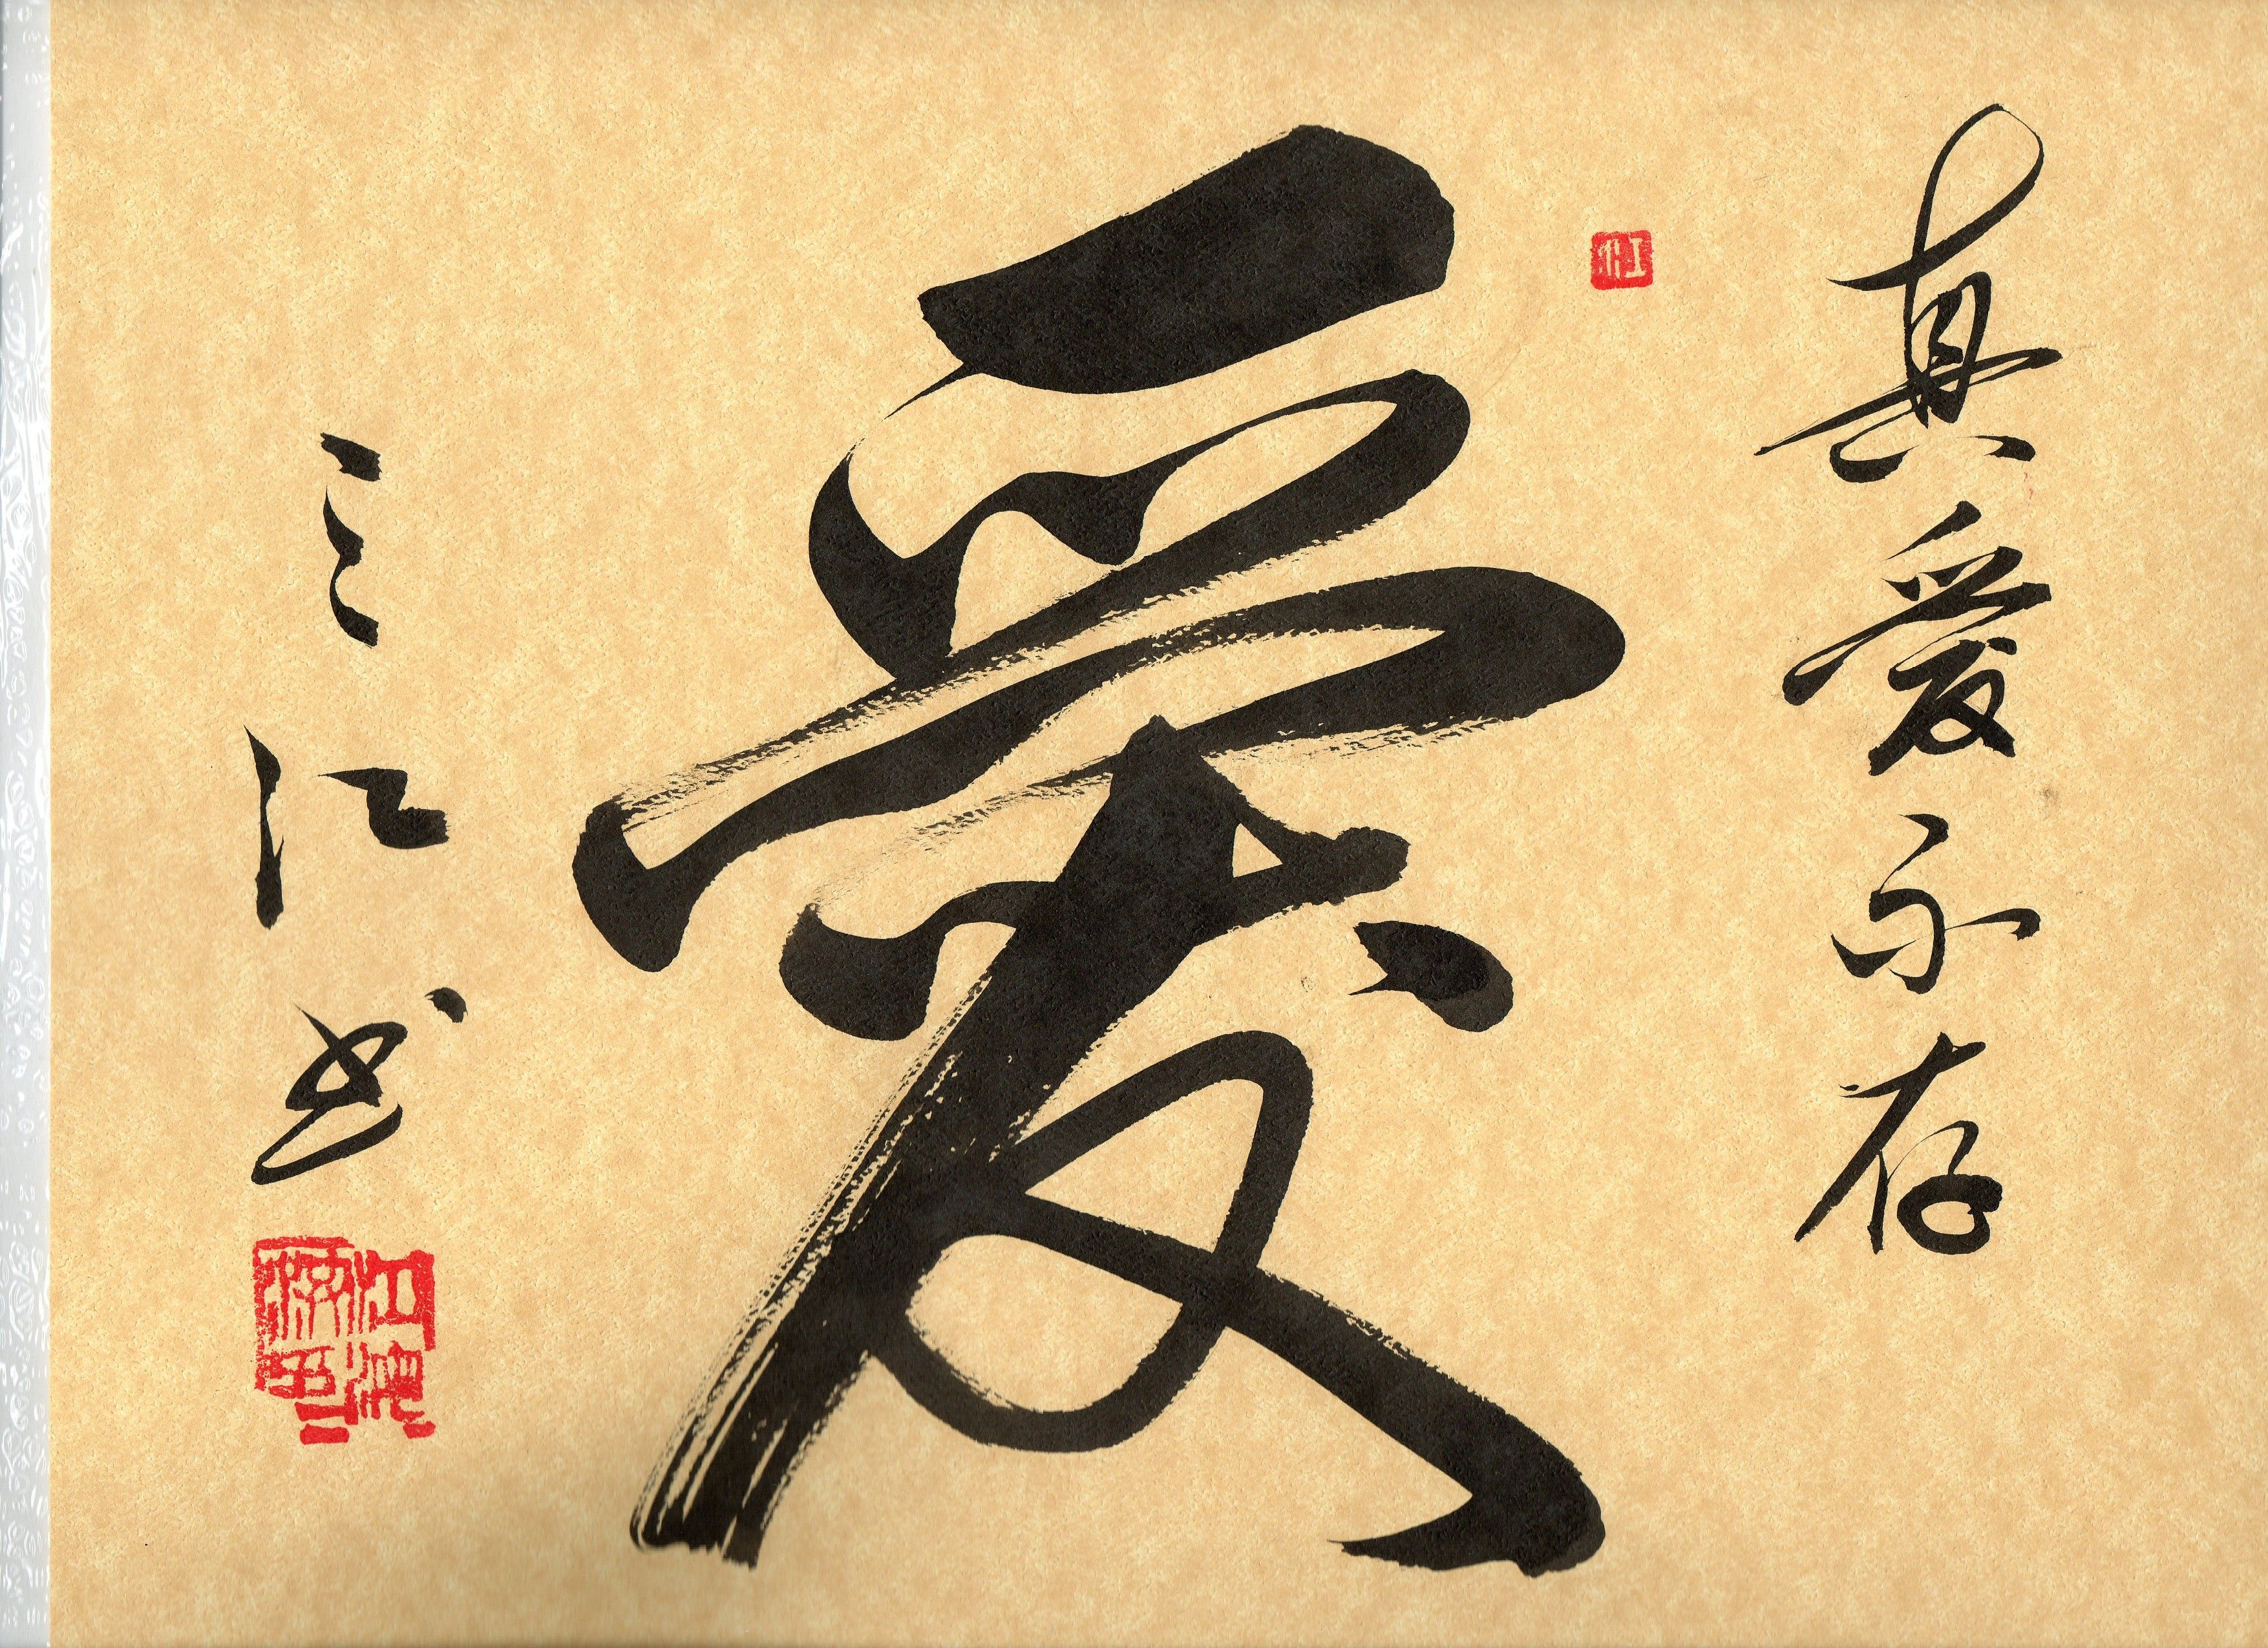 chinese calligraphy | Chinese calligraphy-ready for framing | China ...